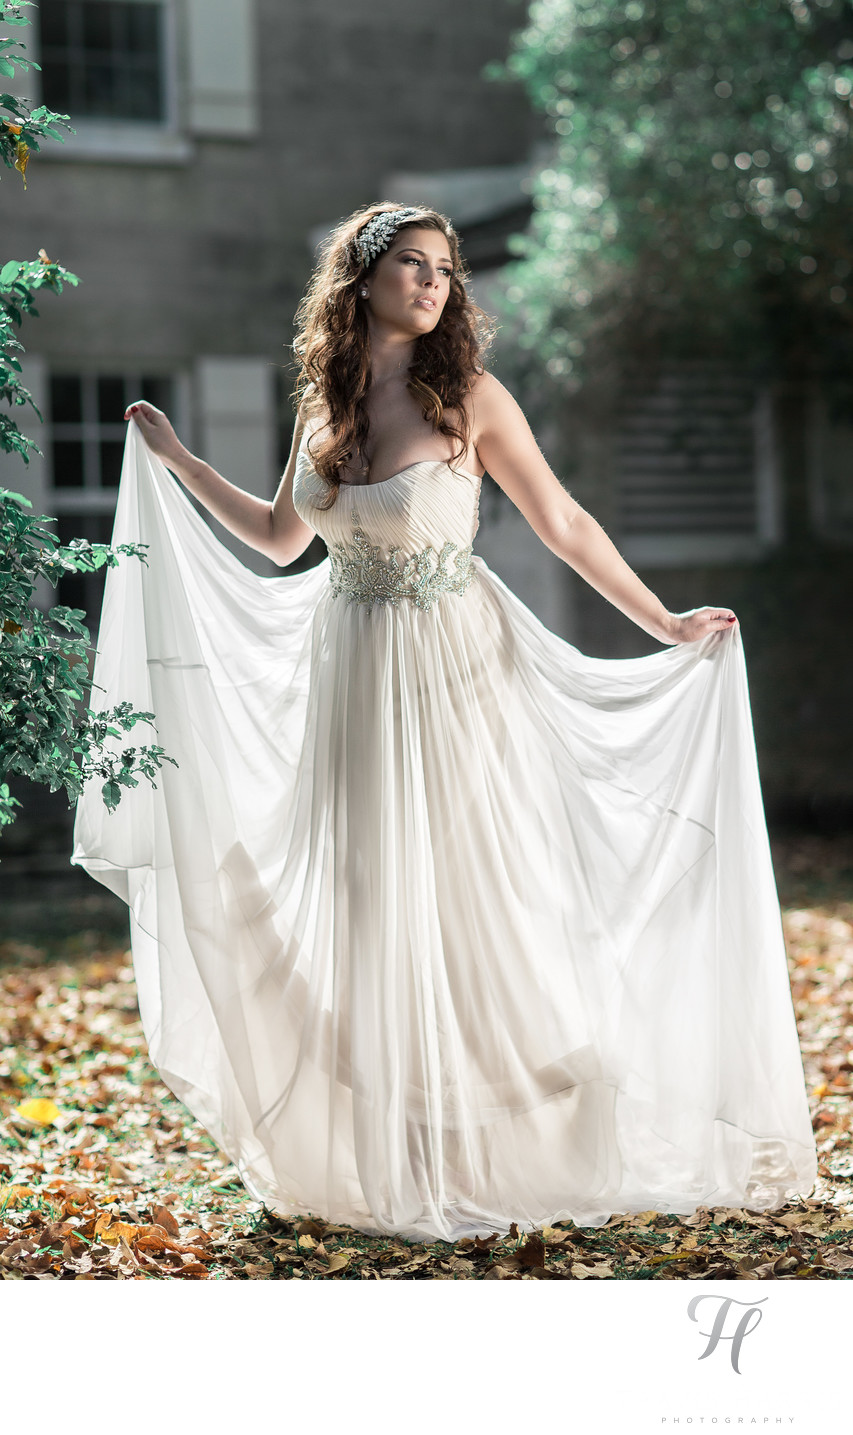 Fairchild Garden Bridal Image